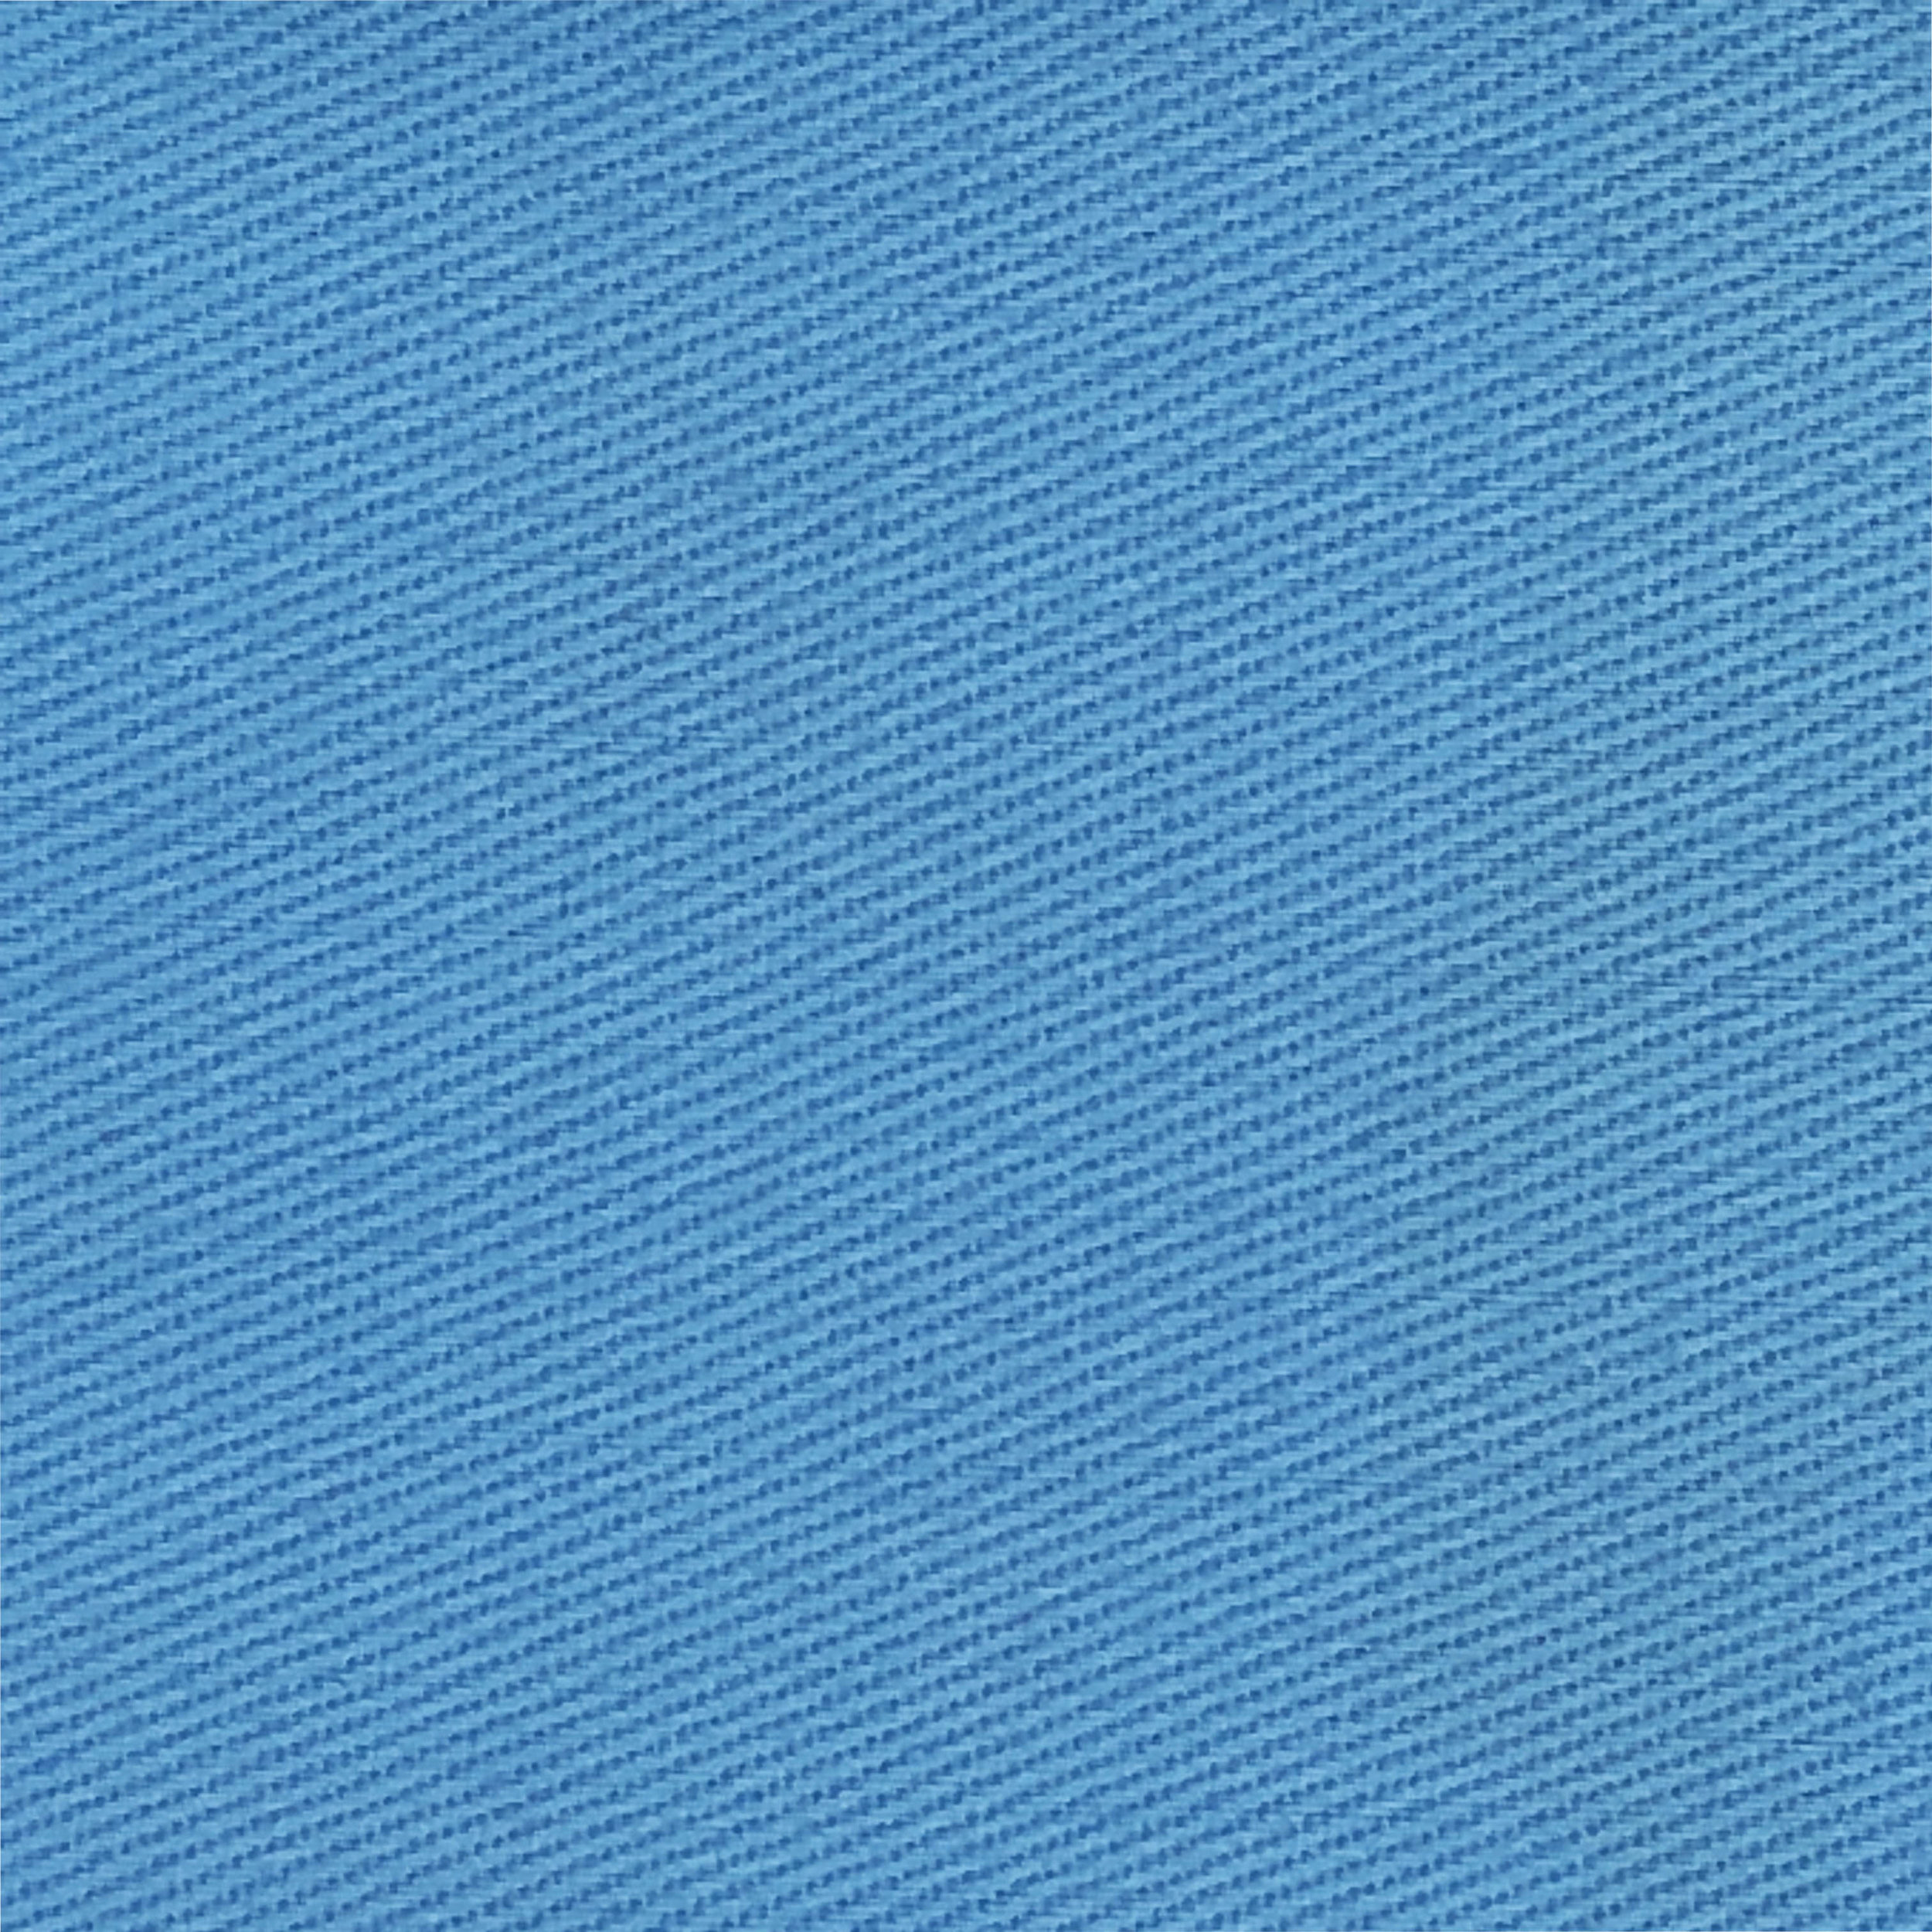 Standard Cotton Twill - >20% Cotton 80% Polyester>High durability>Affordable>More structure (slightly harder than 100% cotton)>Popular in simple merchandise, fashion wear and workwear>Mostly used in baseball caps, snapback caps and dad hats